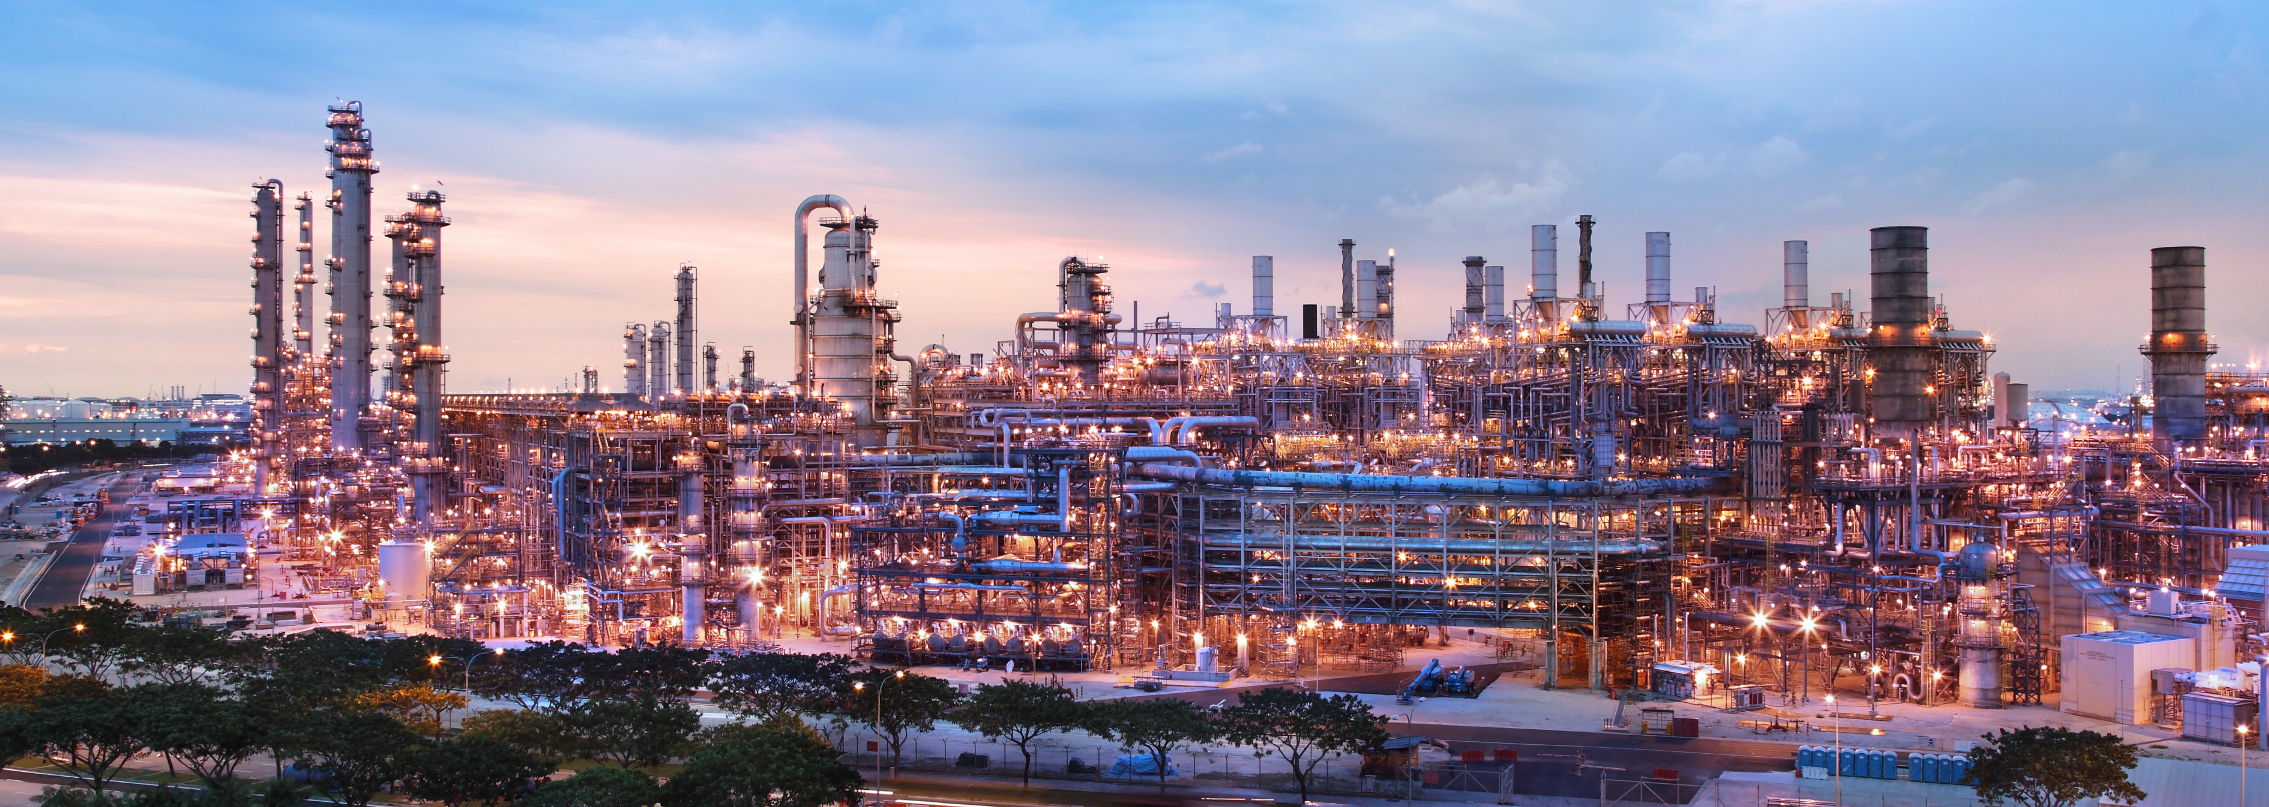 Singapore_Chemical_Plant_Expansion_photo